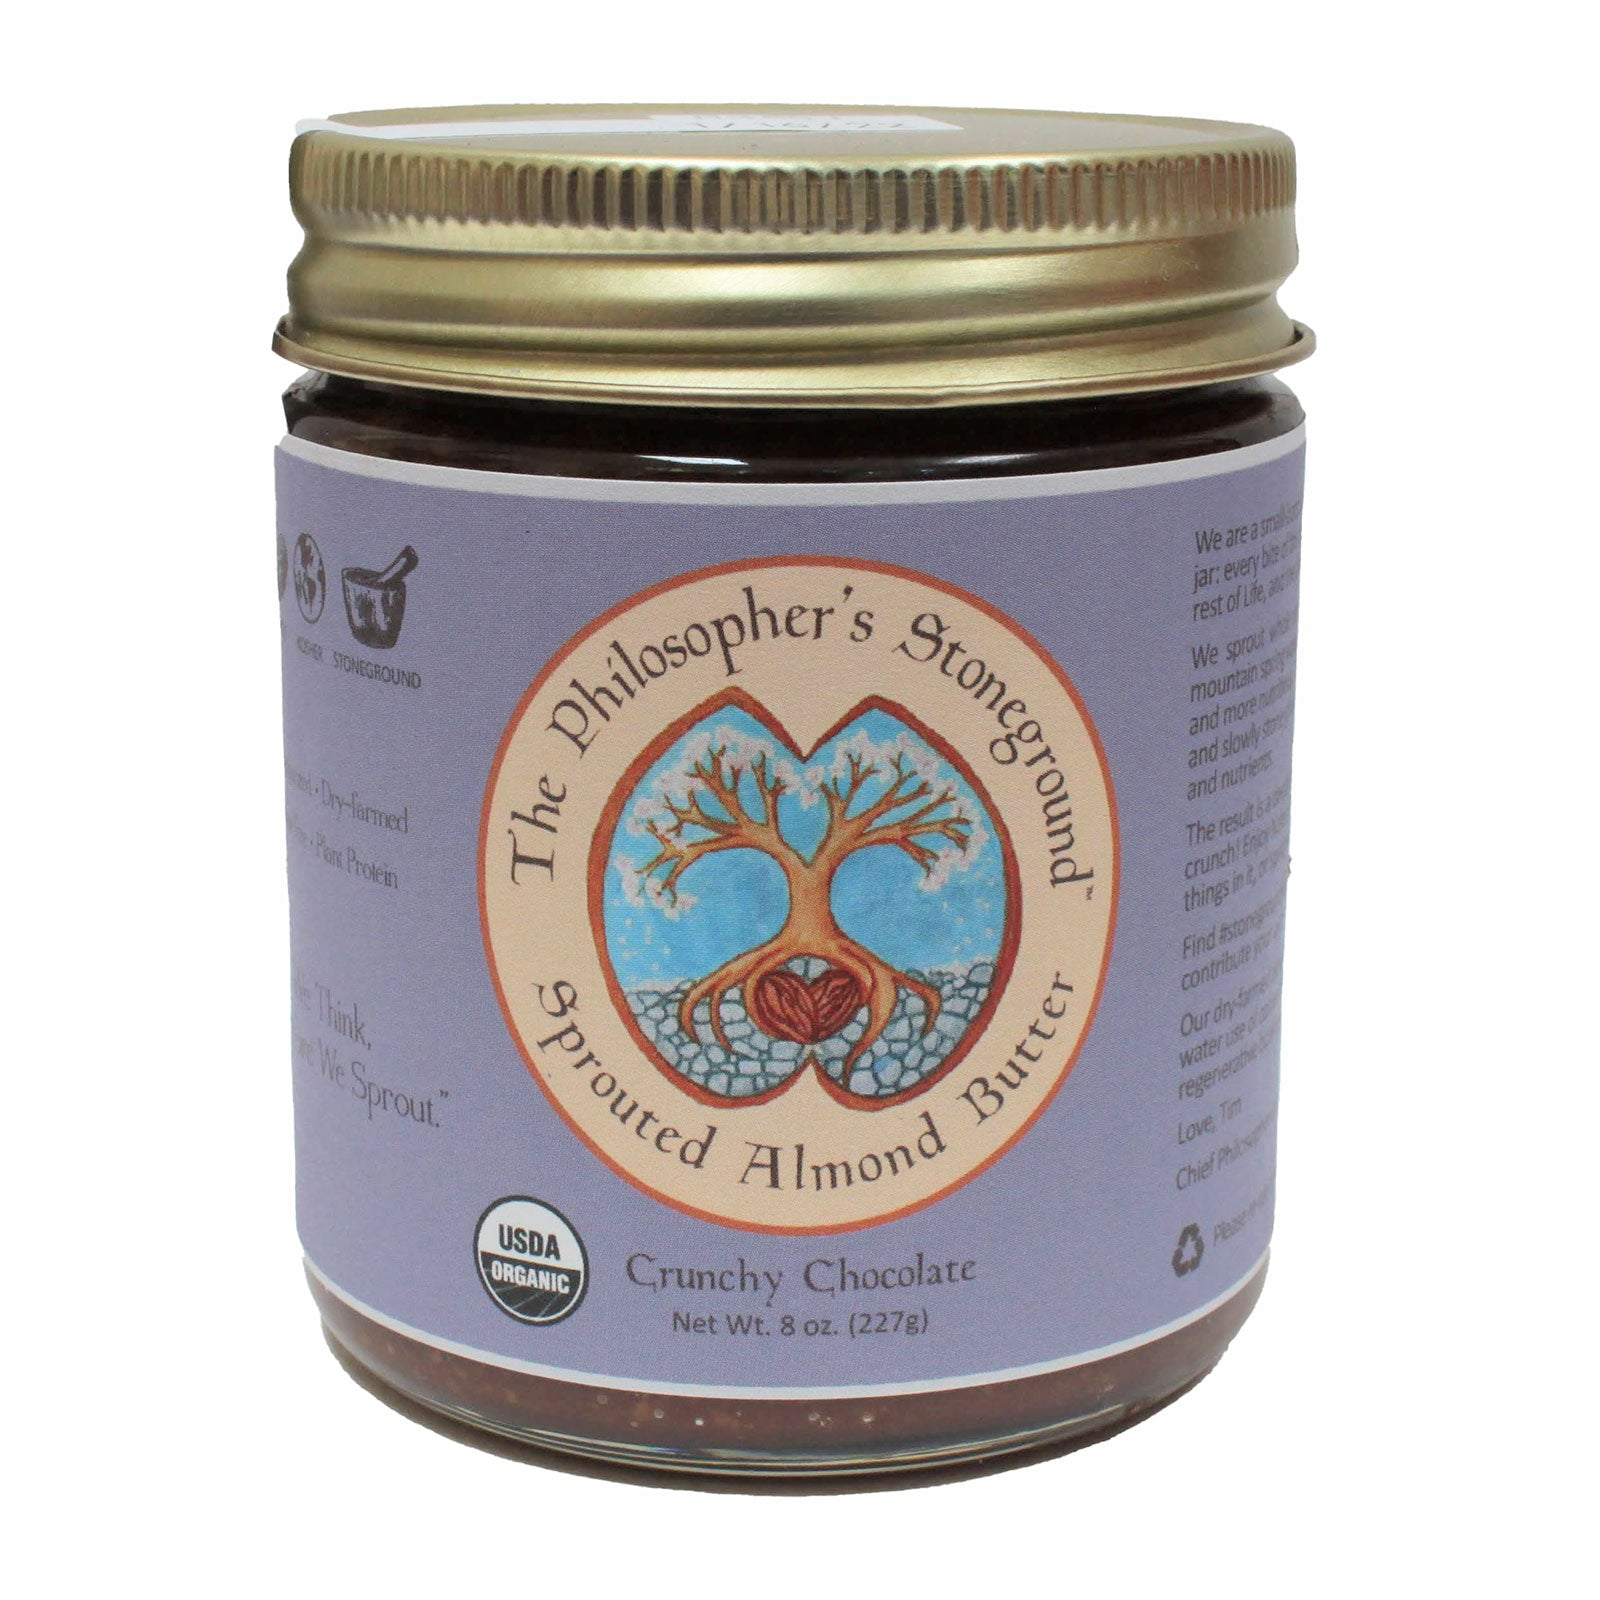 The Philosopher's Stoneground Crunchy Chocolate Almond Butter jar front